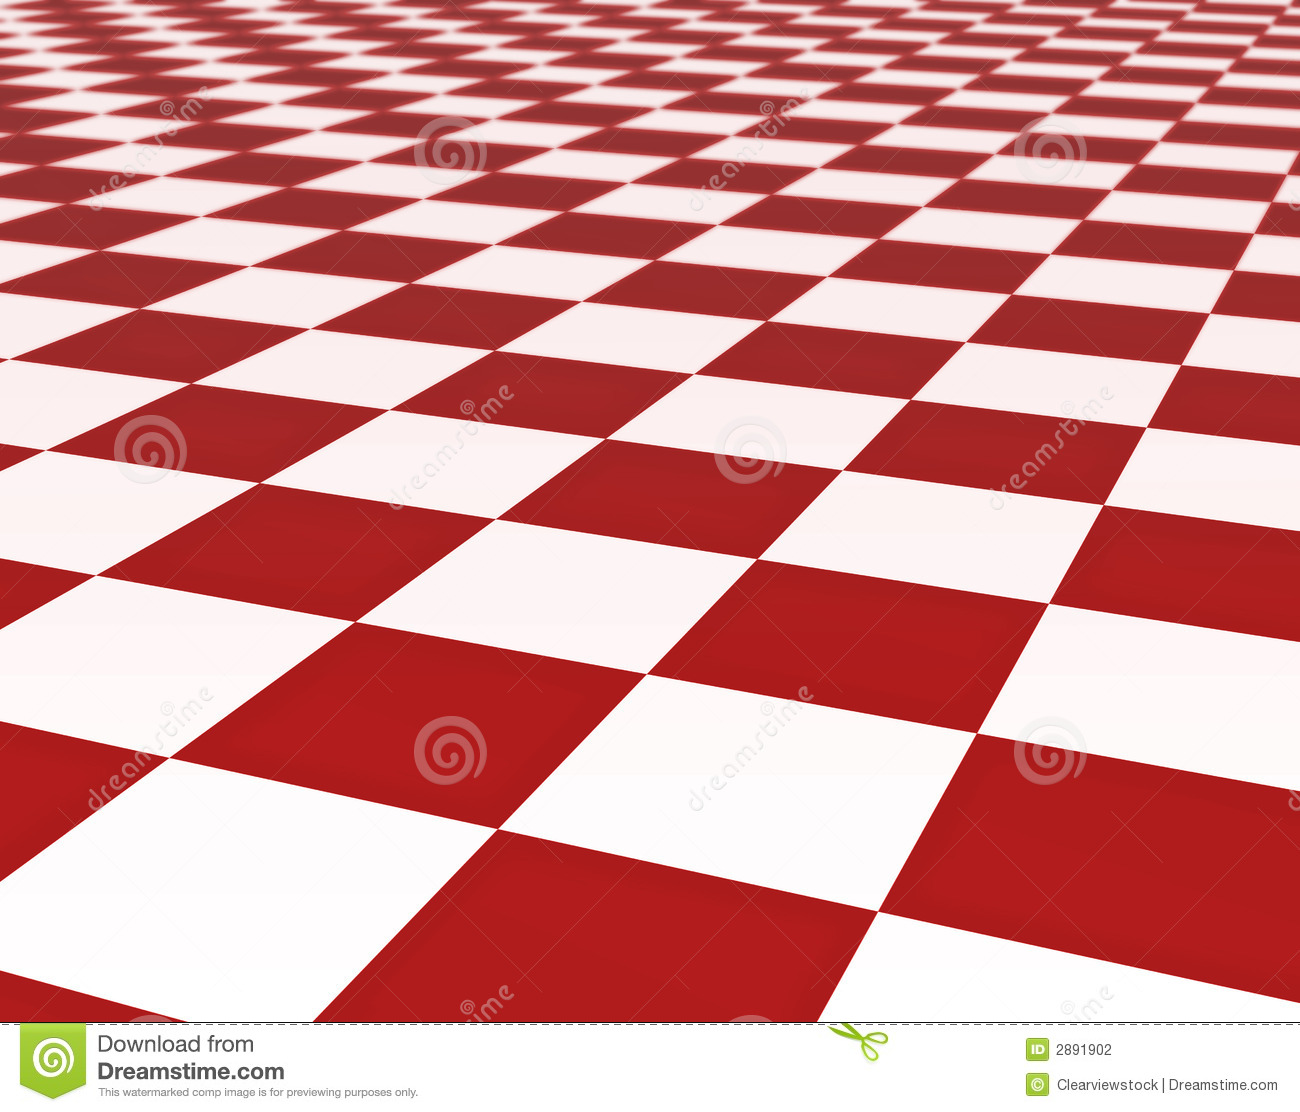 Rode Vloertegels Red And White Floor Tiles Stock Photography Image 2891902